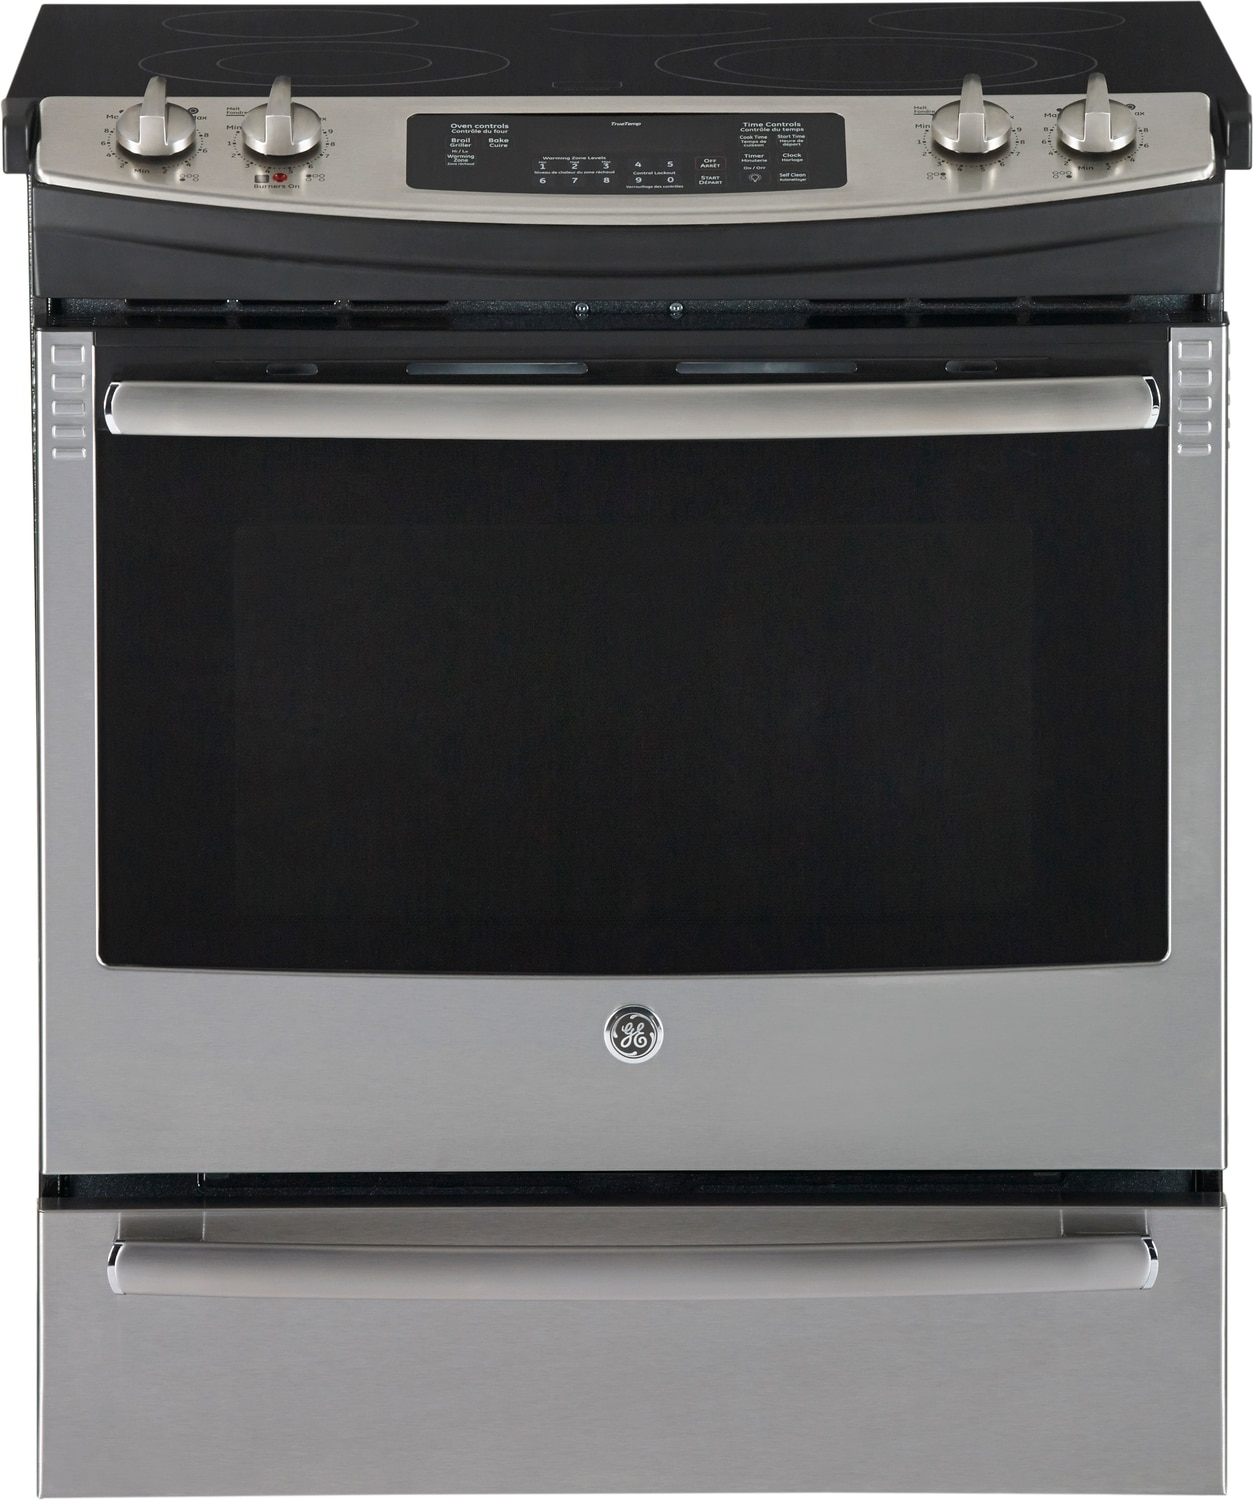 GE Stainless Steel Slide-In Electric Convection Range (5.2 Cu. Ft.) - JCS860SFSS